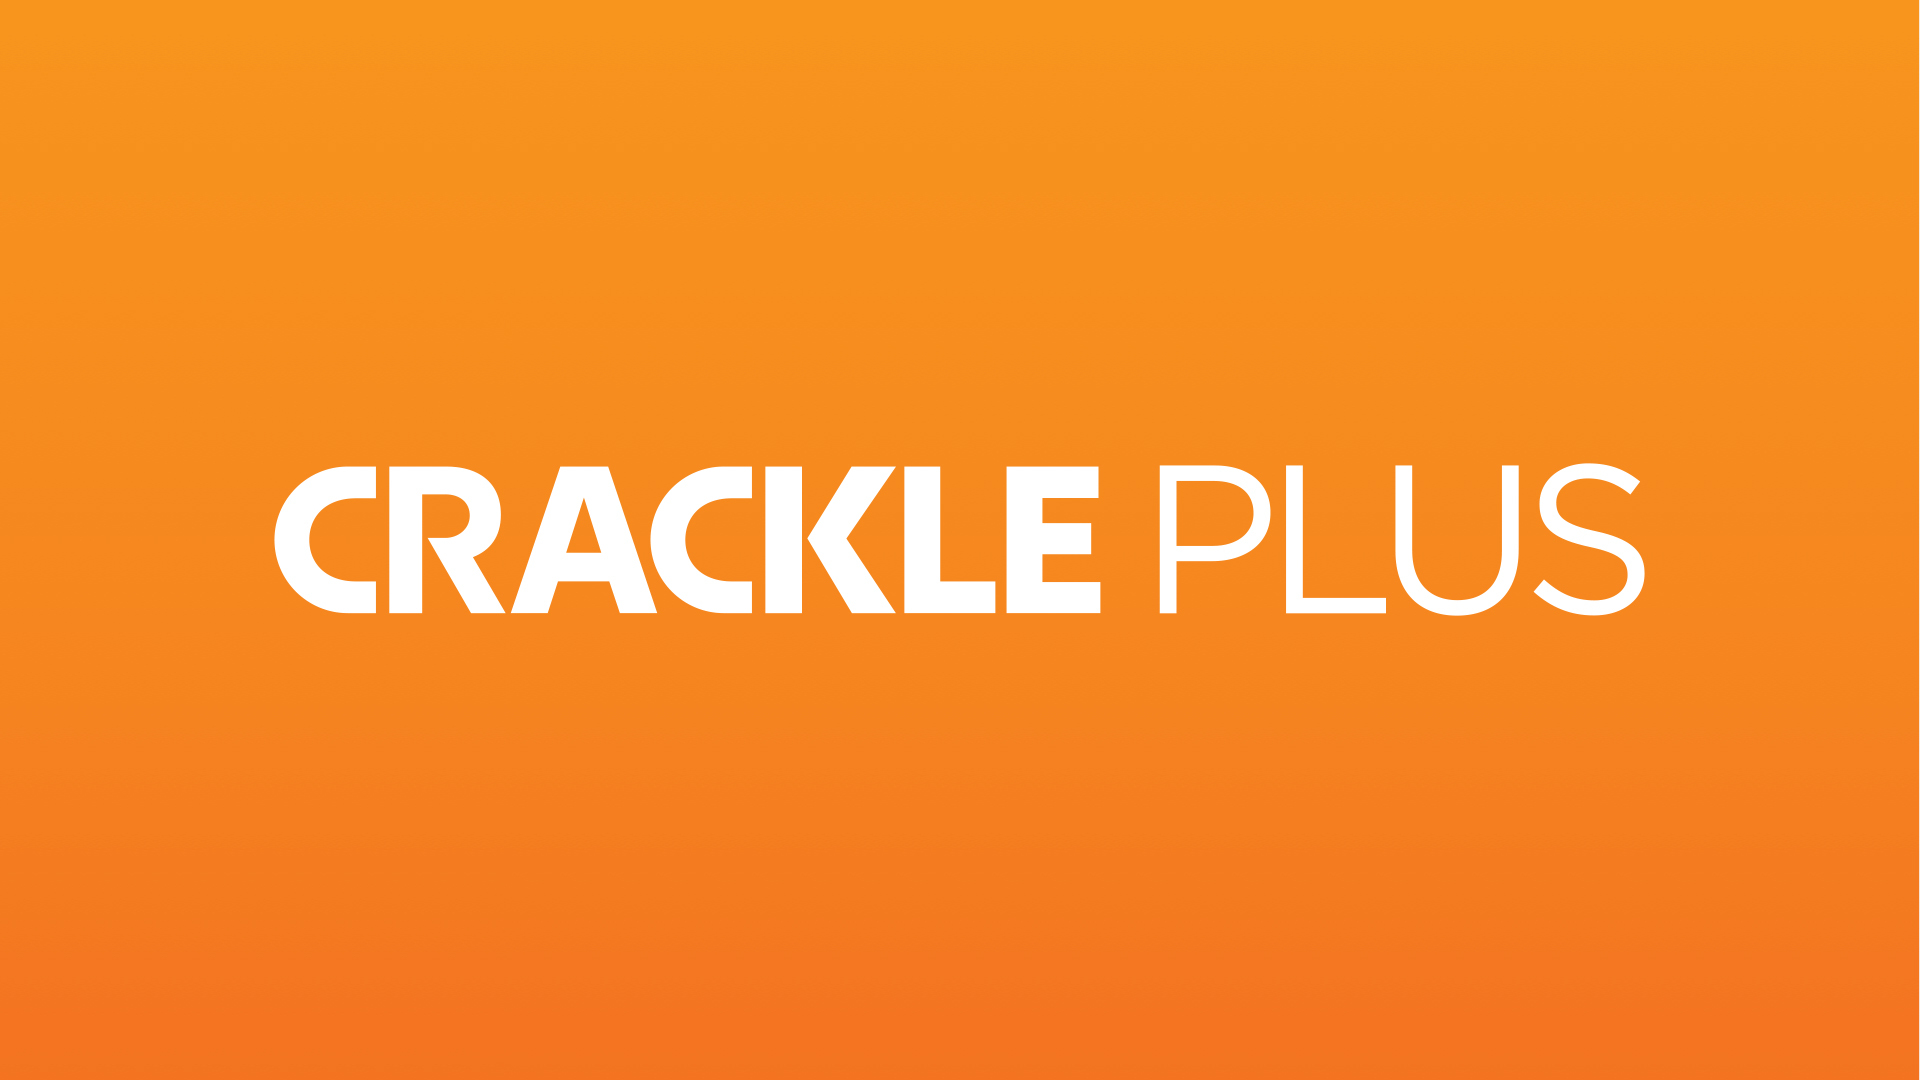 Crackle Plus